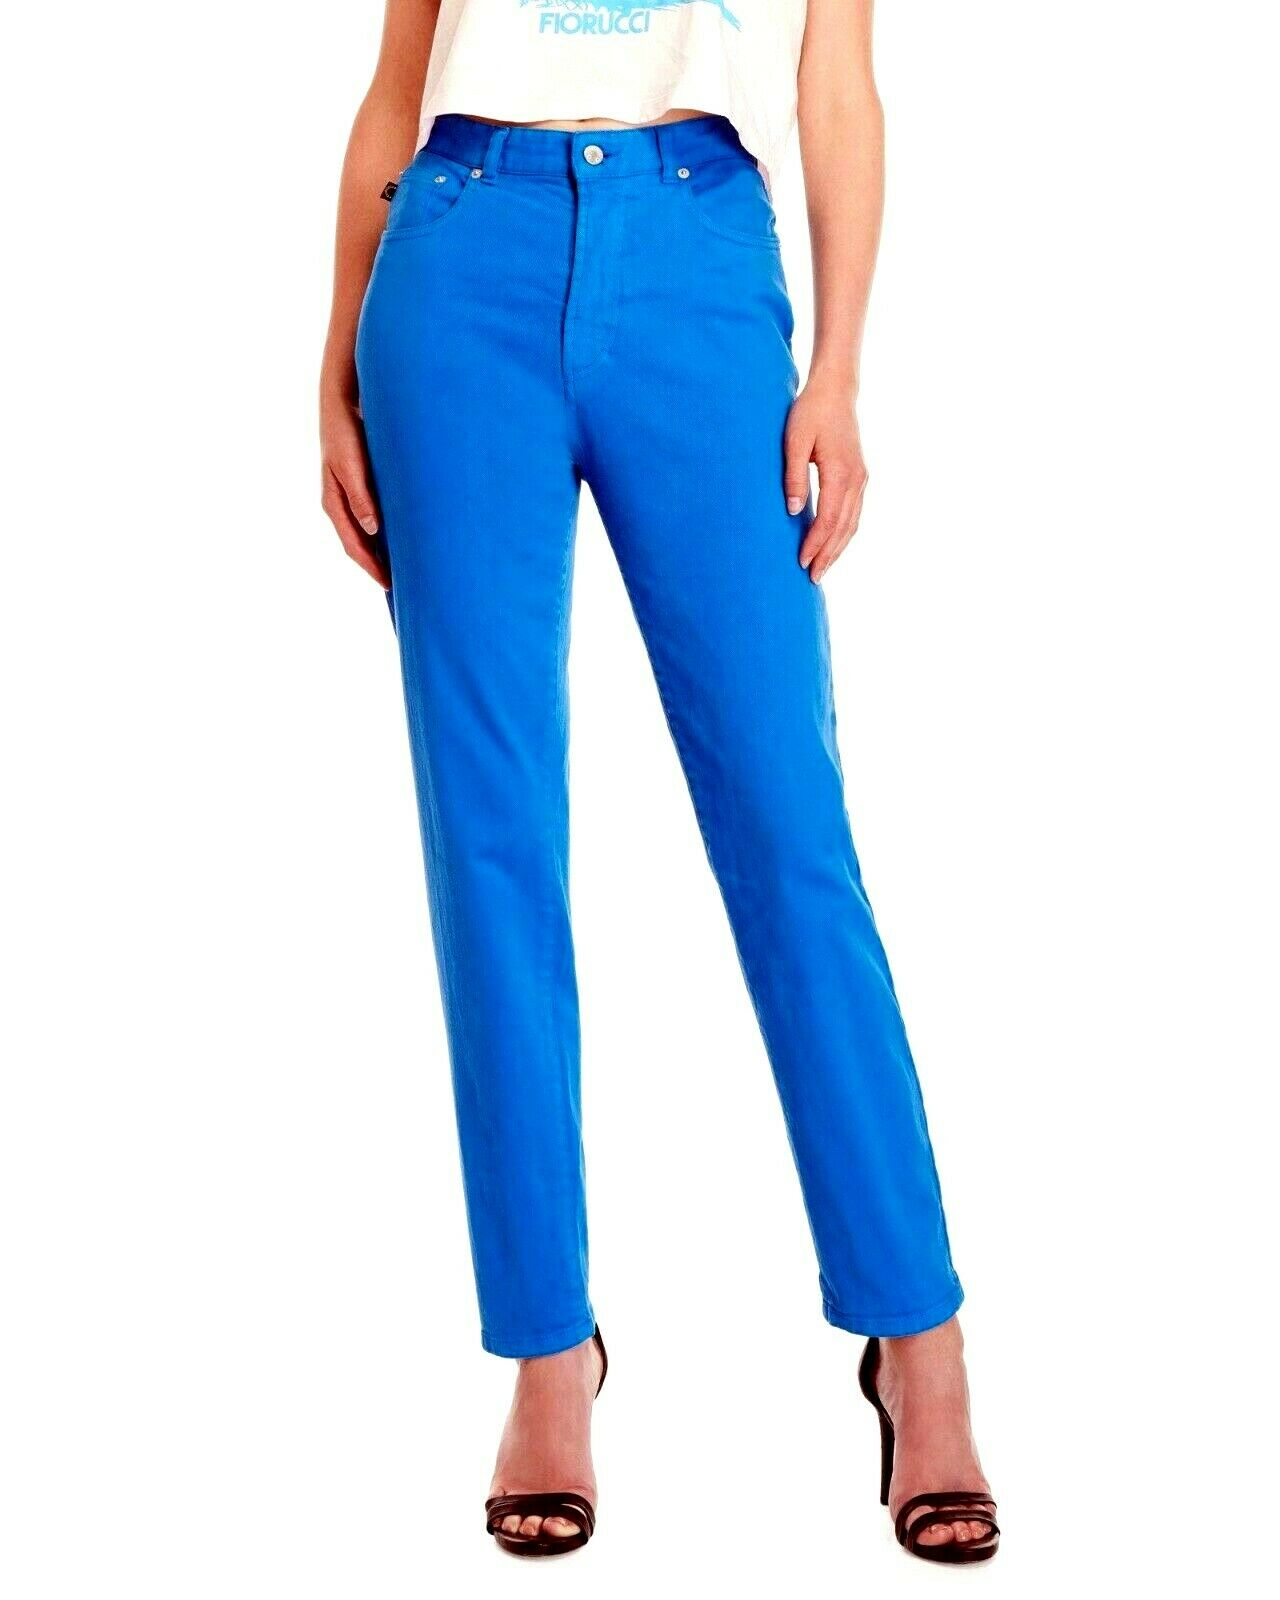 NEW FIORUCCI Jeans Electric bluee Tara Classic Tapered SIZE 24 x 29 ITALY NWT